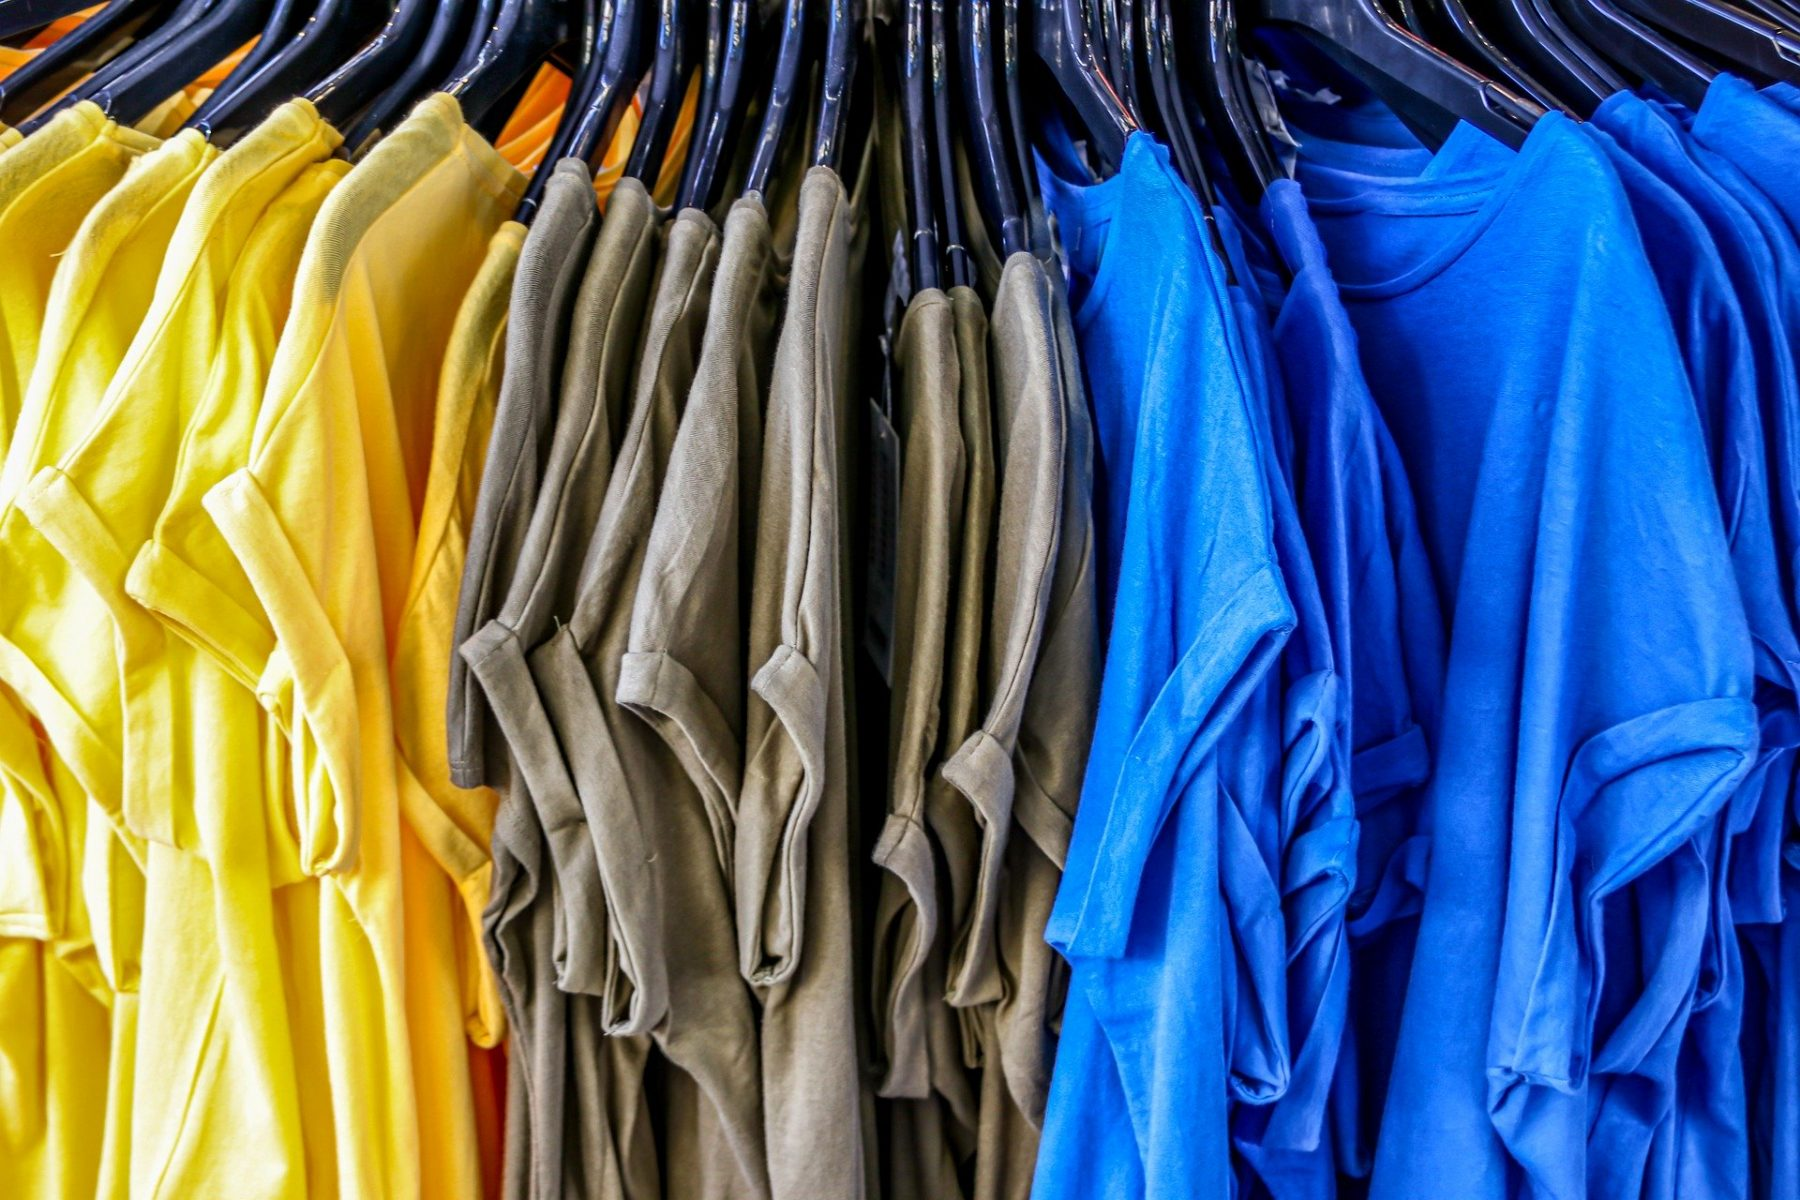 picture of t-shirts on a sales rack in an article about DIY projects you can do with them